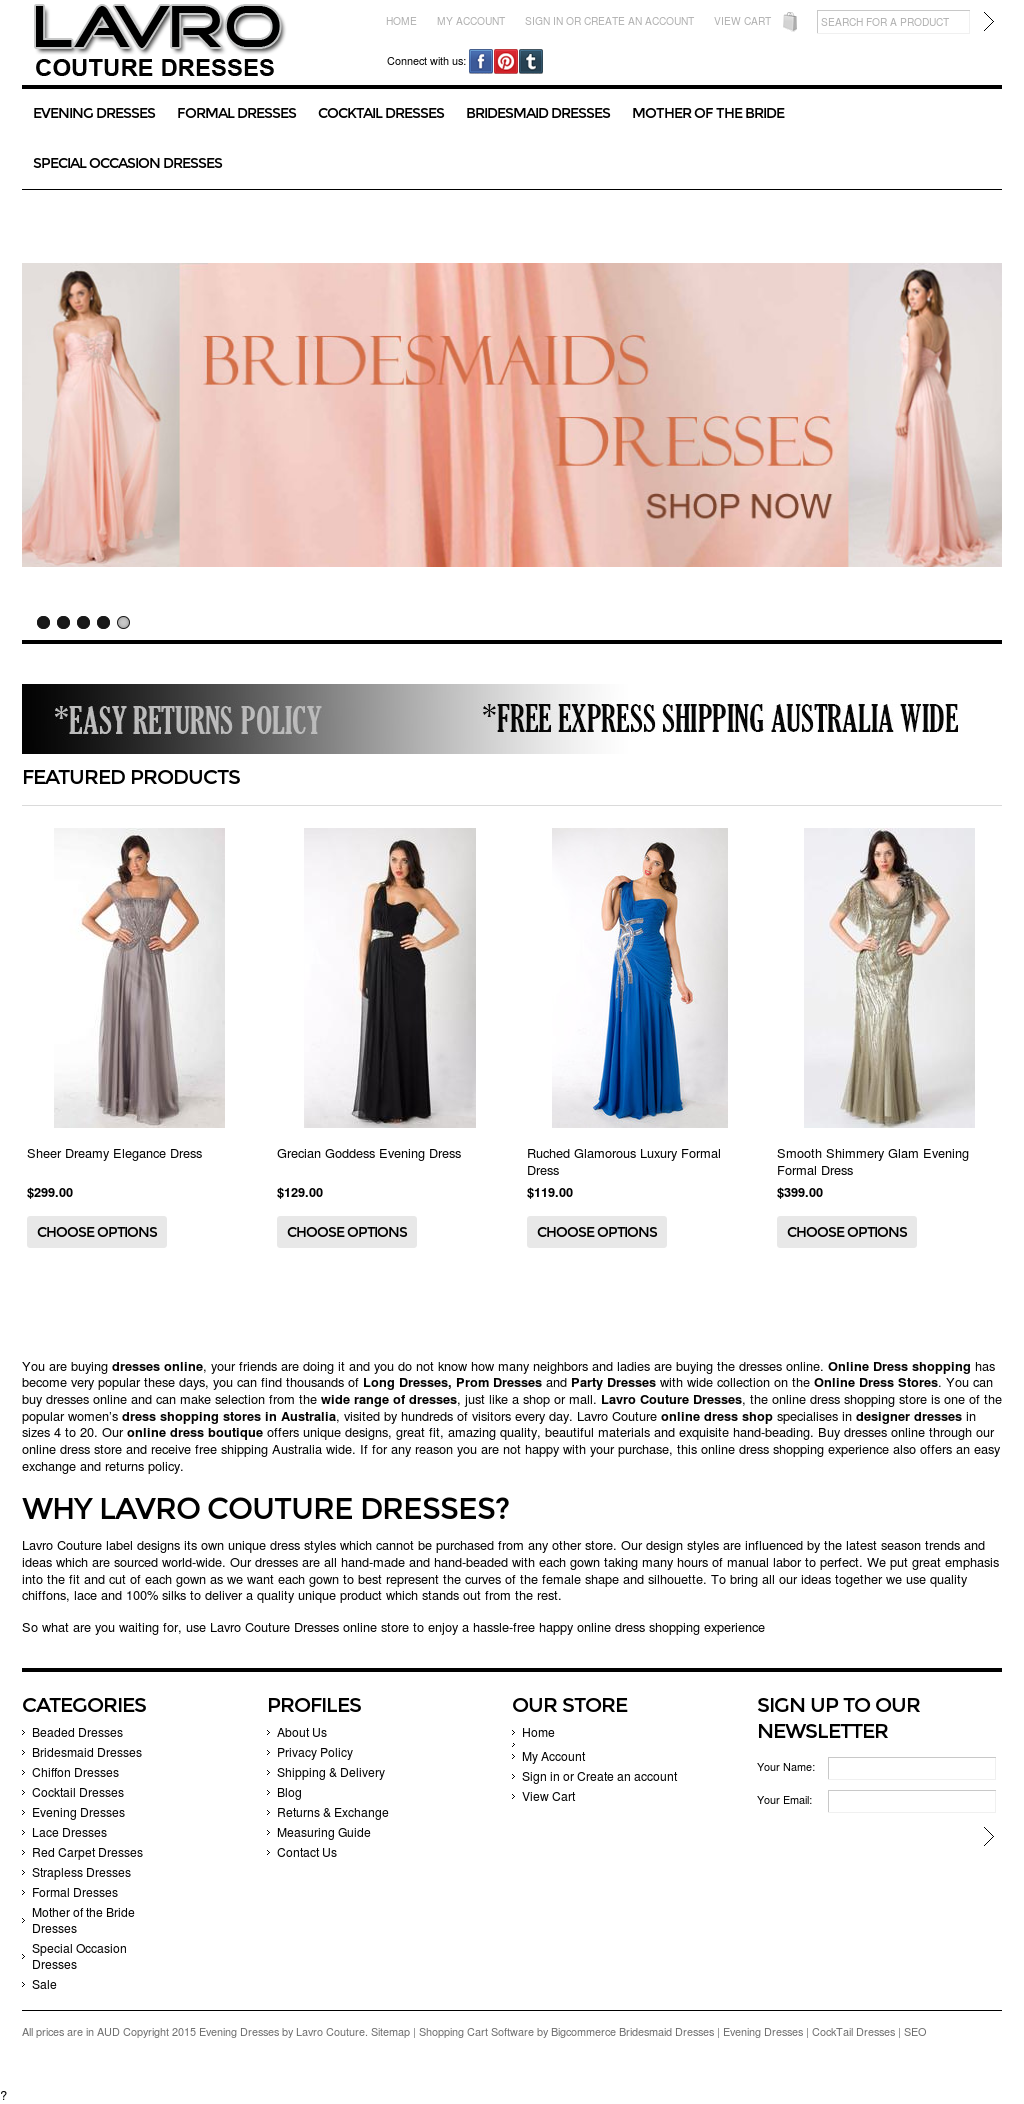 Lavro Haute Couture Competitors, Revenue and Employees